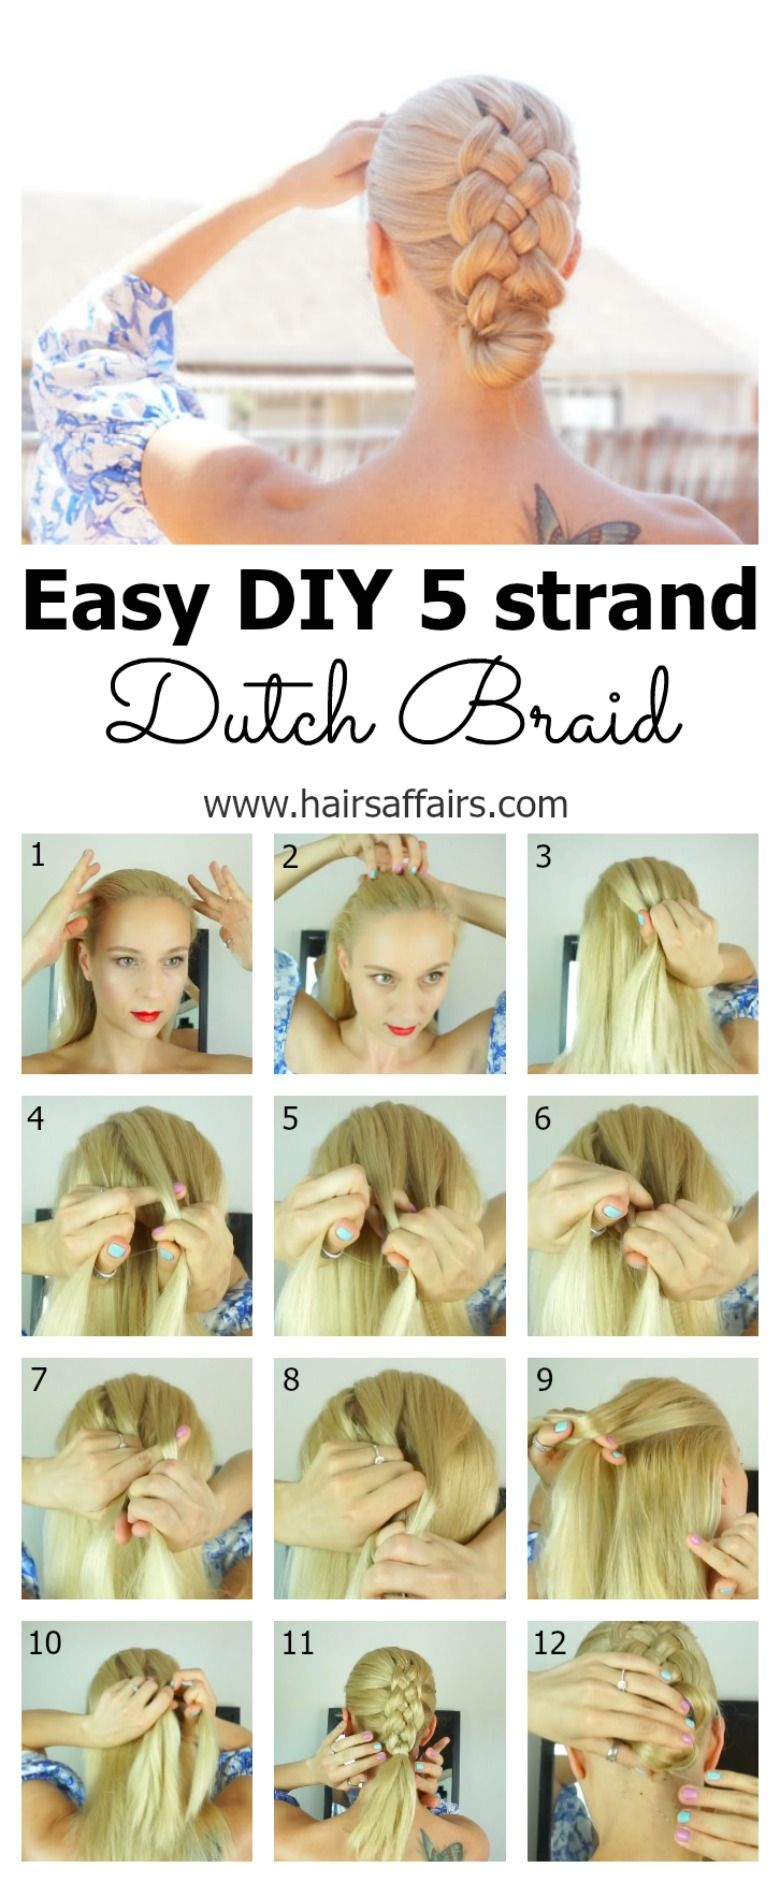 Five Strand Dutch Braid Made Easy Diy Tutorial With Images